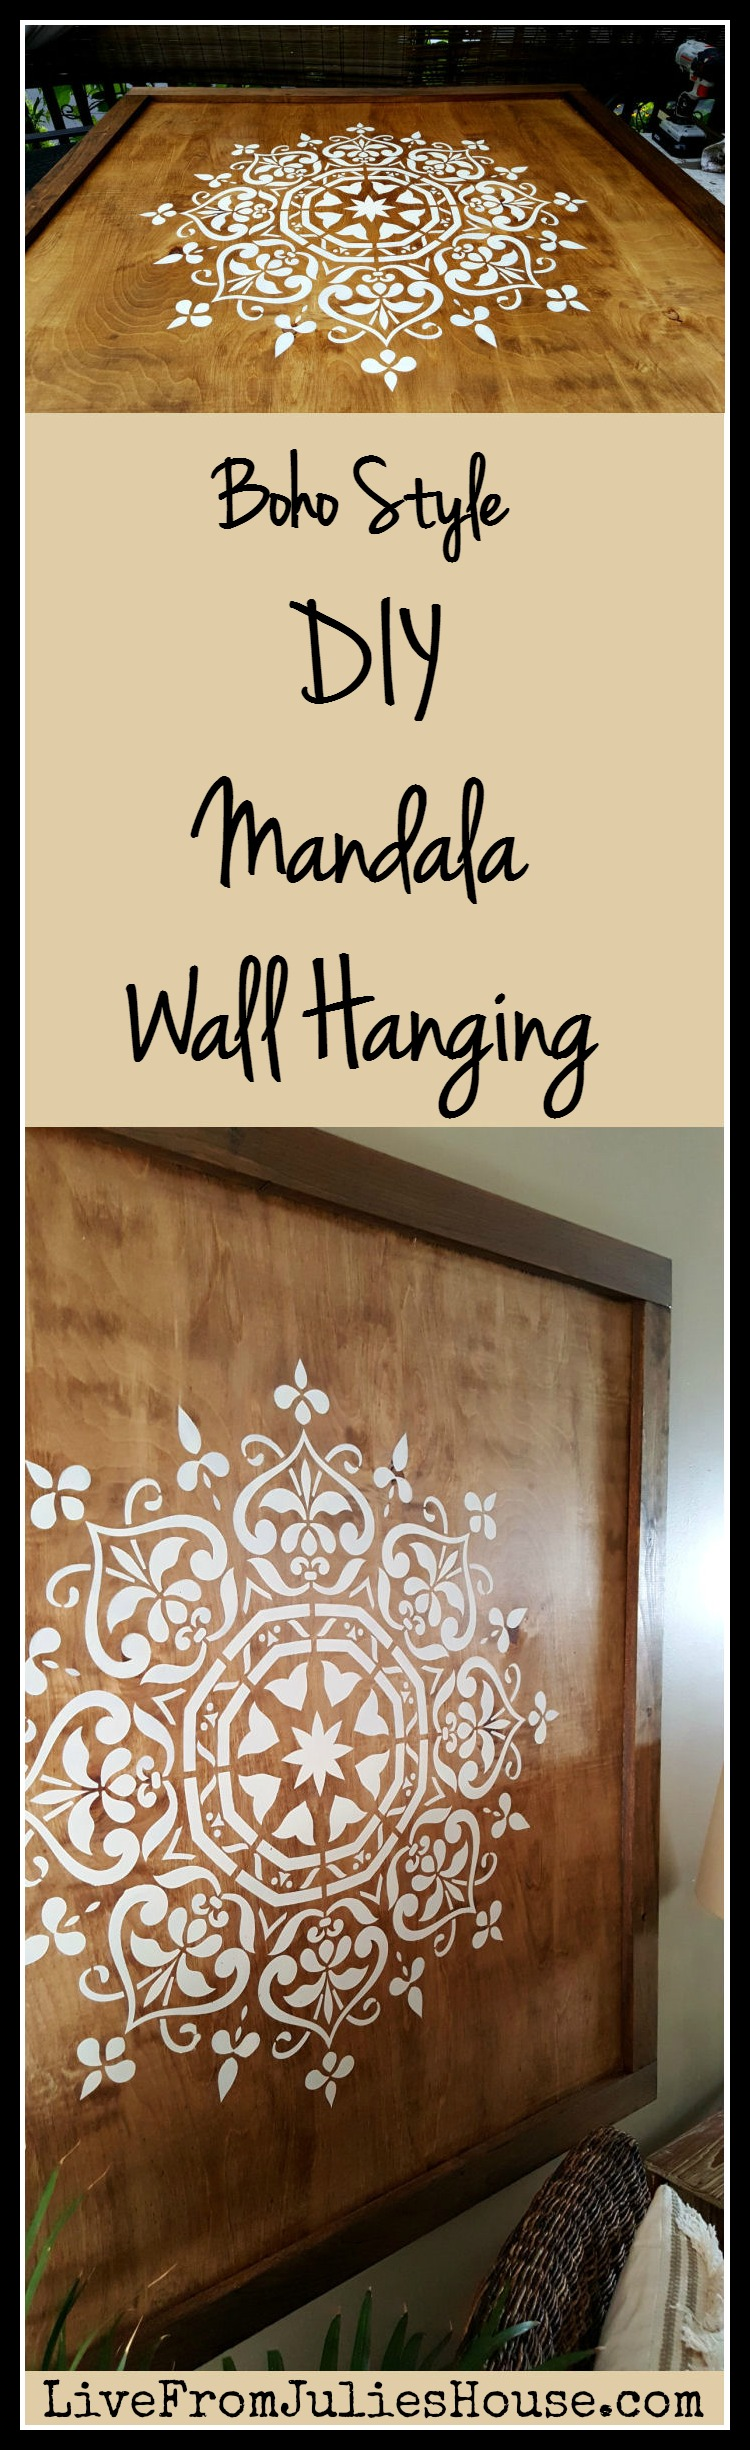 Boho Style DIY Mandala Wall Hanging - Want to add a dramatic boho style piece of art to your walls without breaking the bank? Check out my DIY Mandala Wall Hanging tutorial.